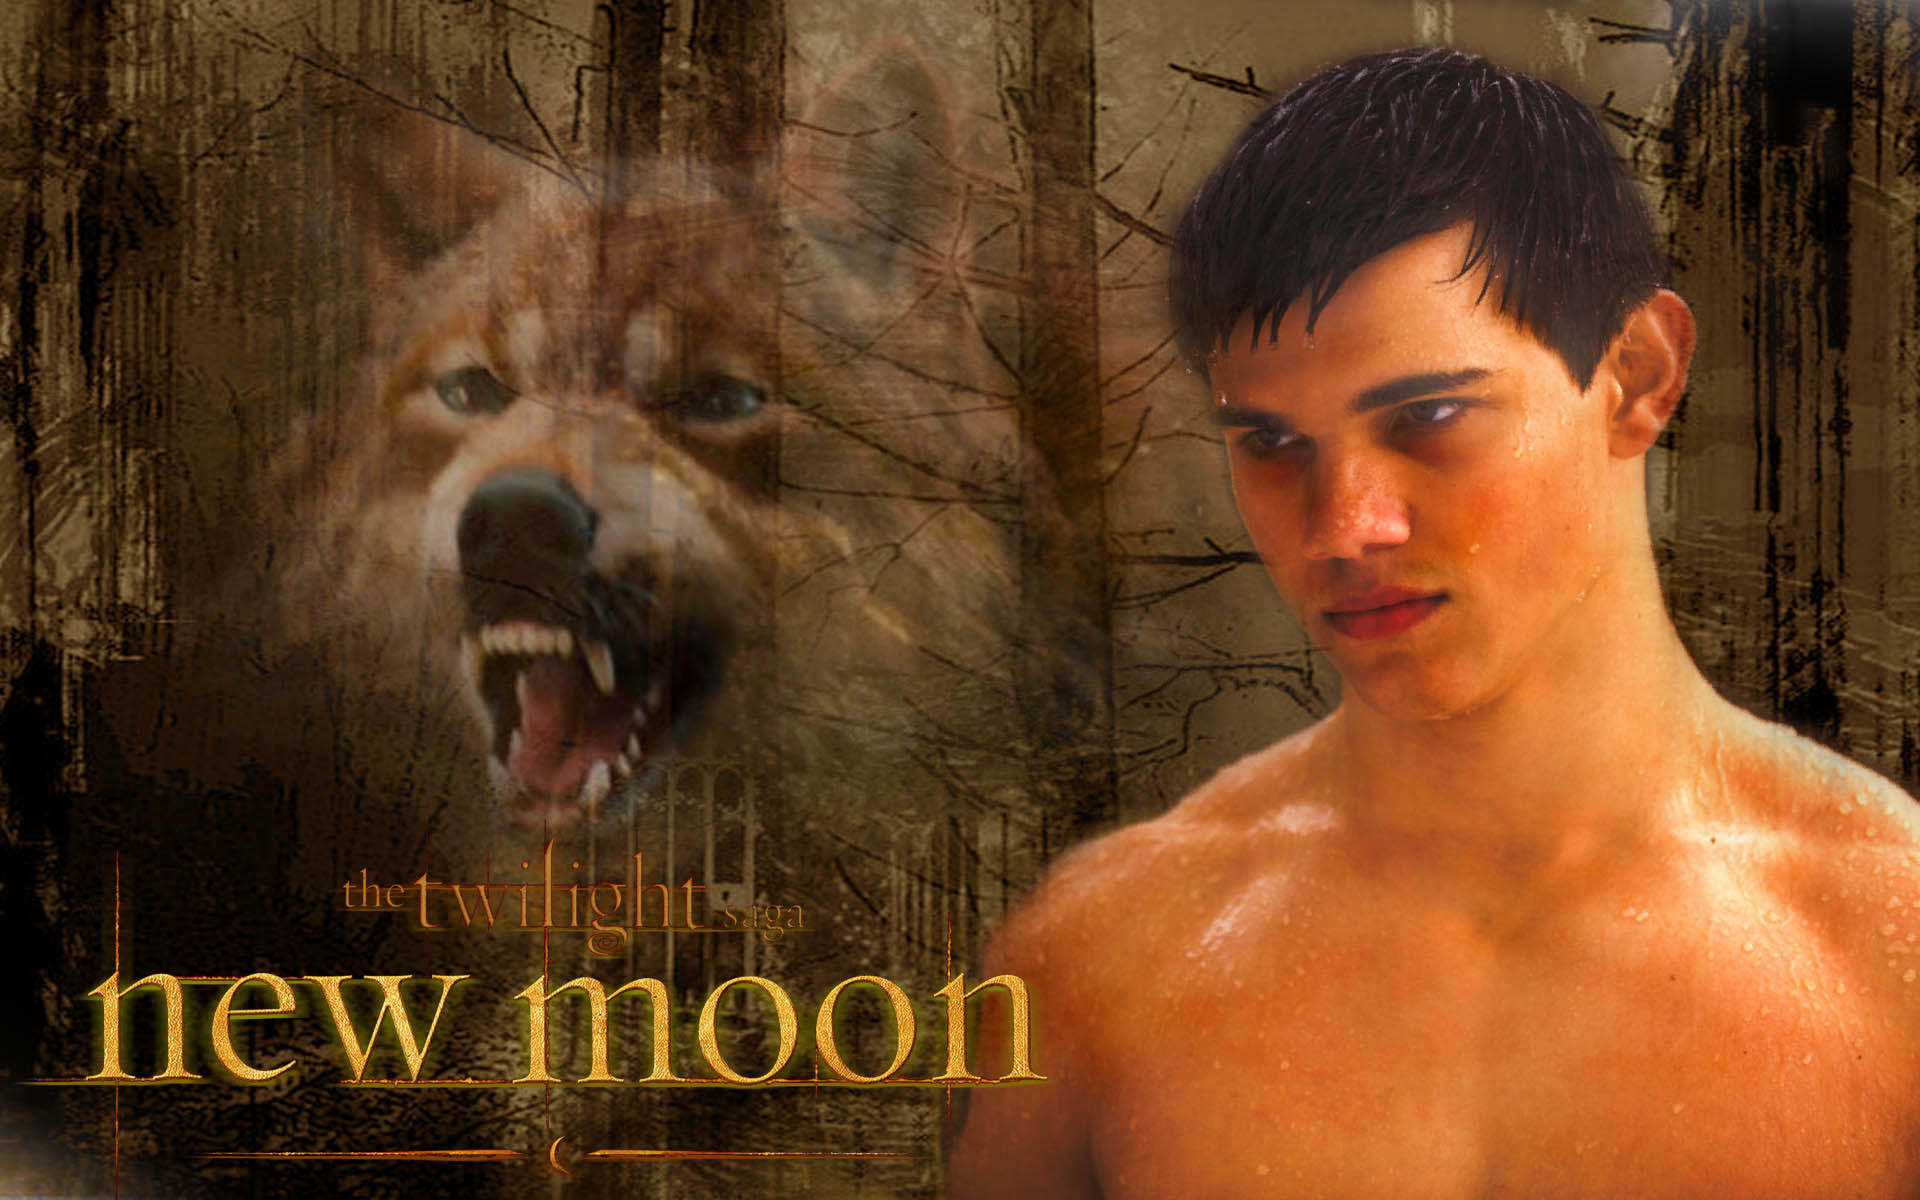 http://images2.fanpop.com/images/photos/7200000/jacob-Blac-New-Moon-jacob-black-7270404-1920-1200.jpg